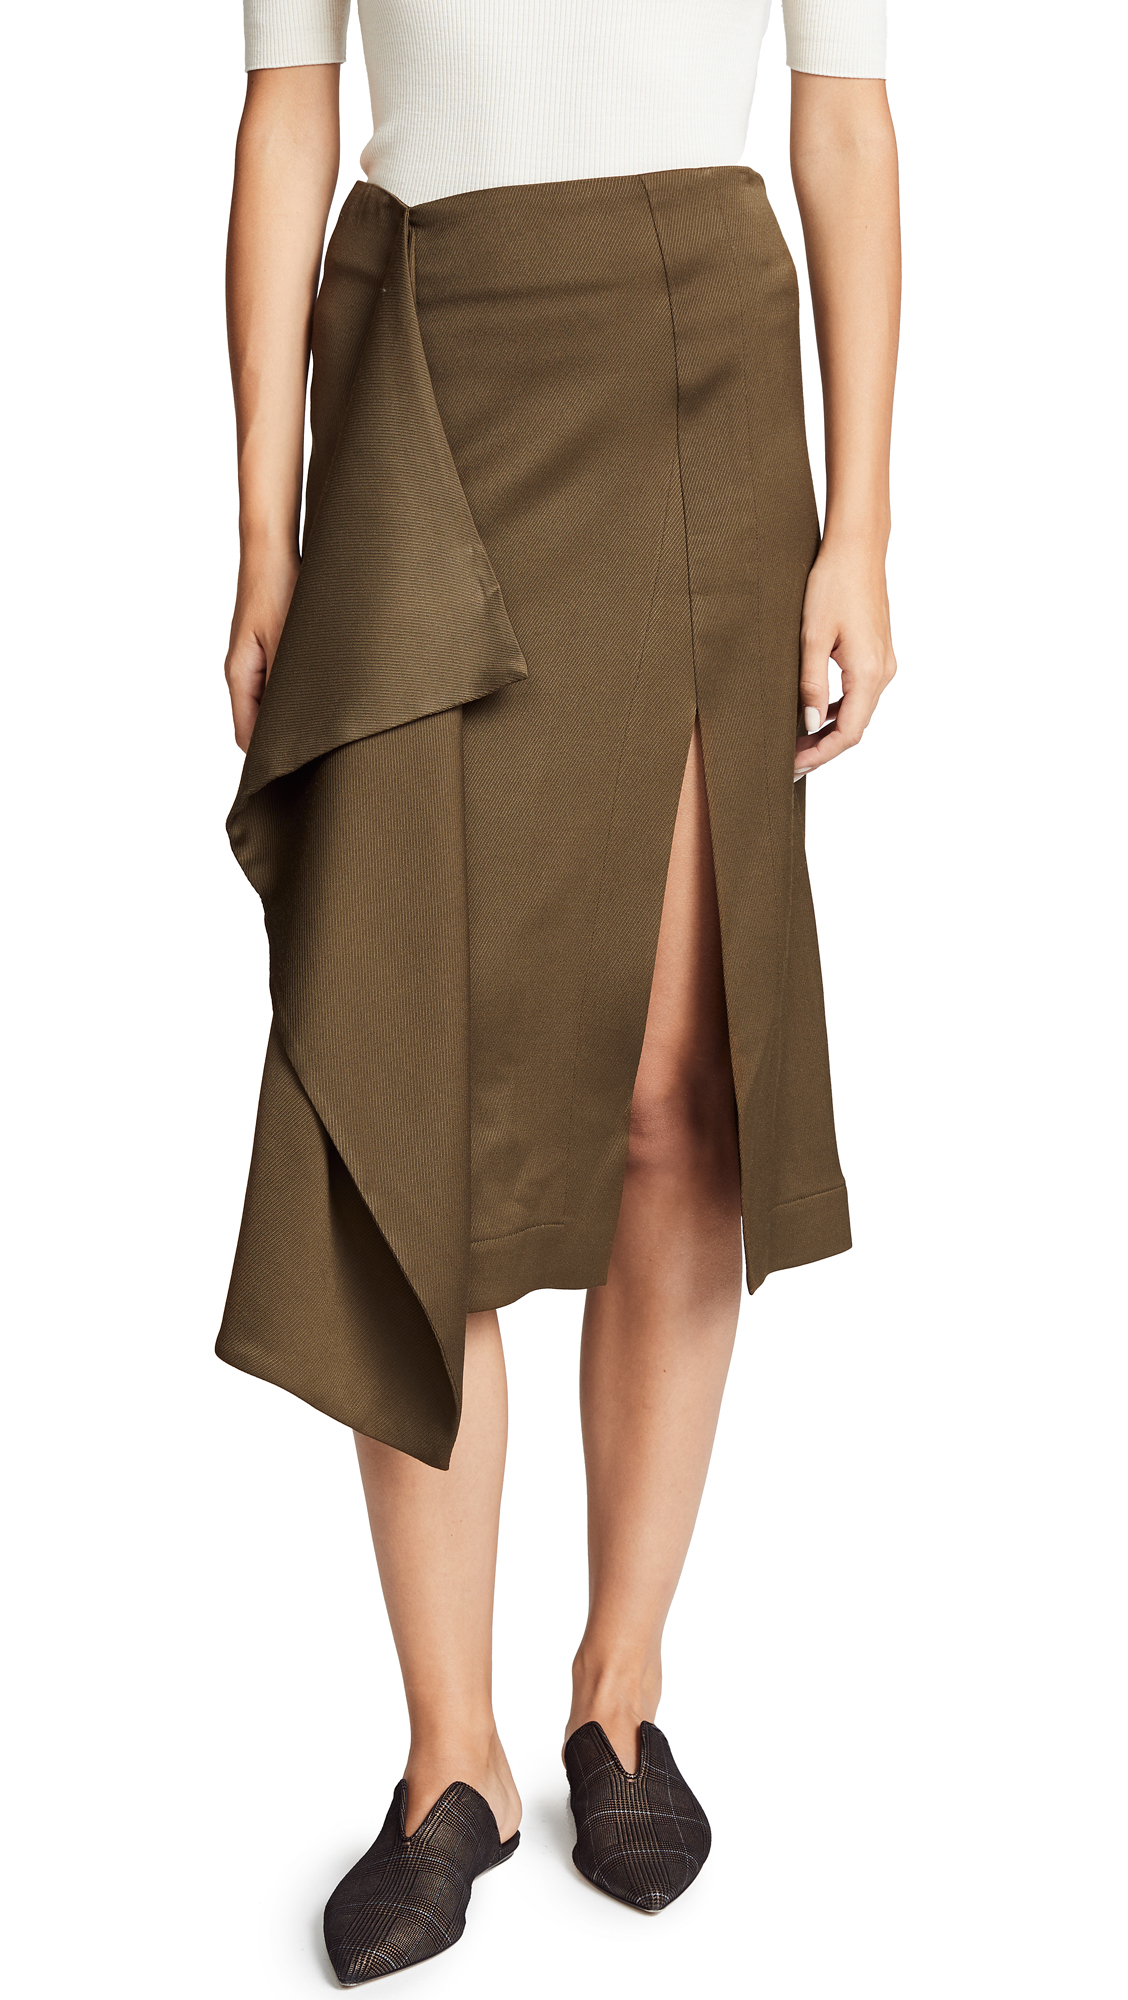 Cedric Charlier Asymmetrical Skirt - Green